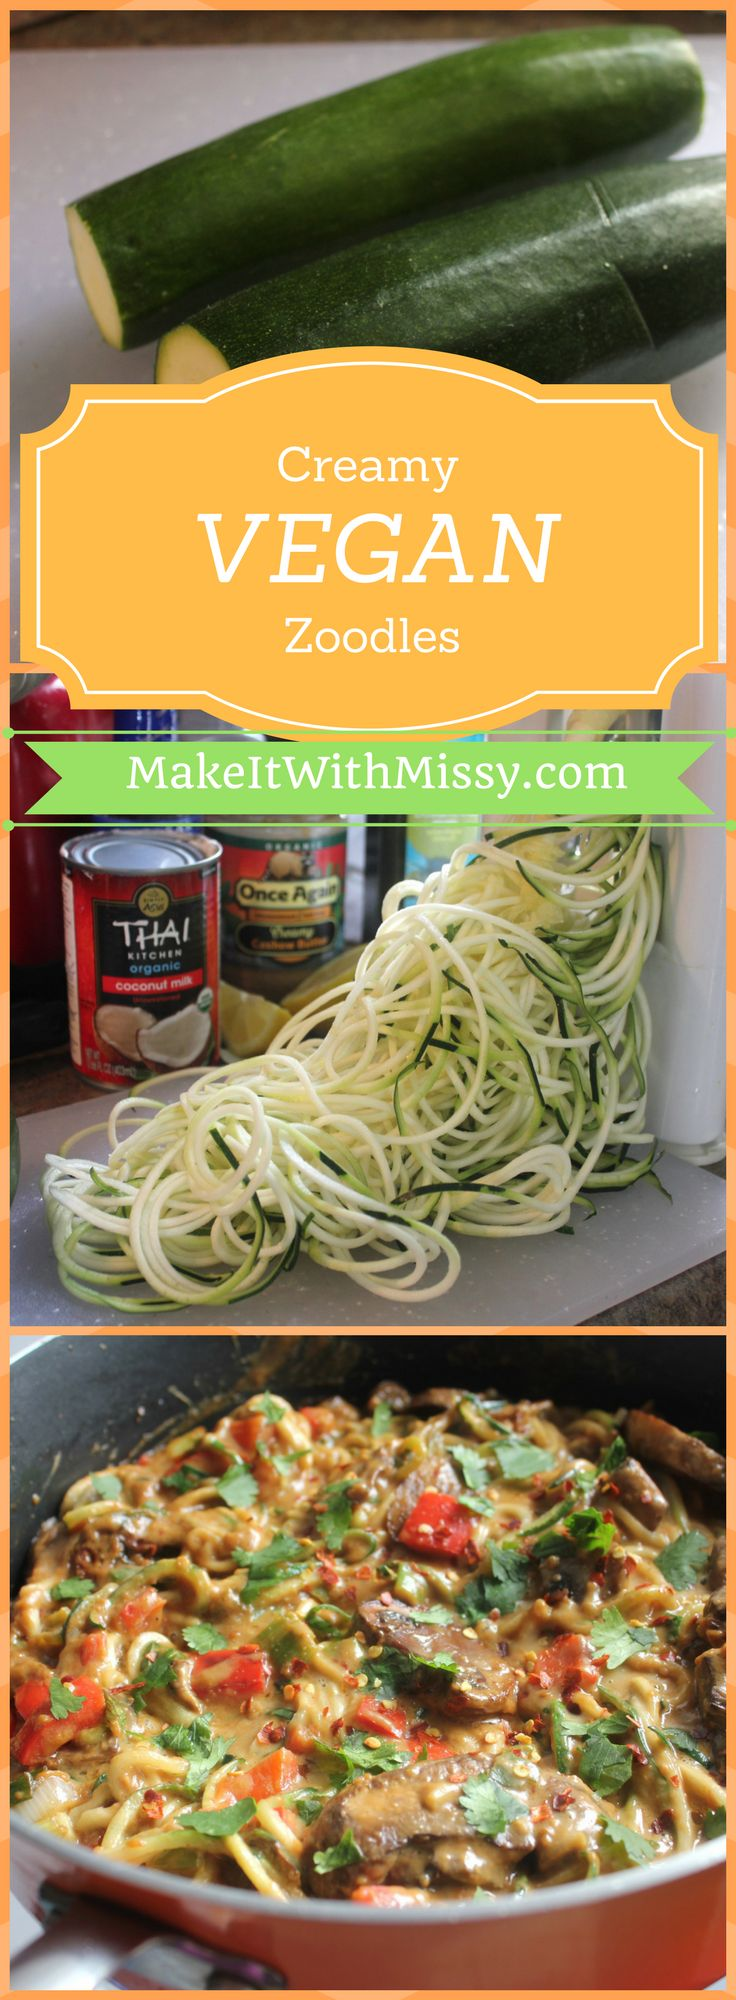 You'll love this healthy recipe for zoodles with creamy cashew sauce. It's a vegan, gluten free, and paleo friendly recipe that's perfect for lunch or dinner.